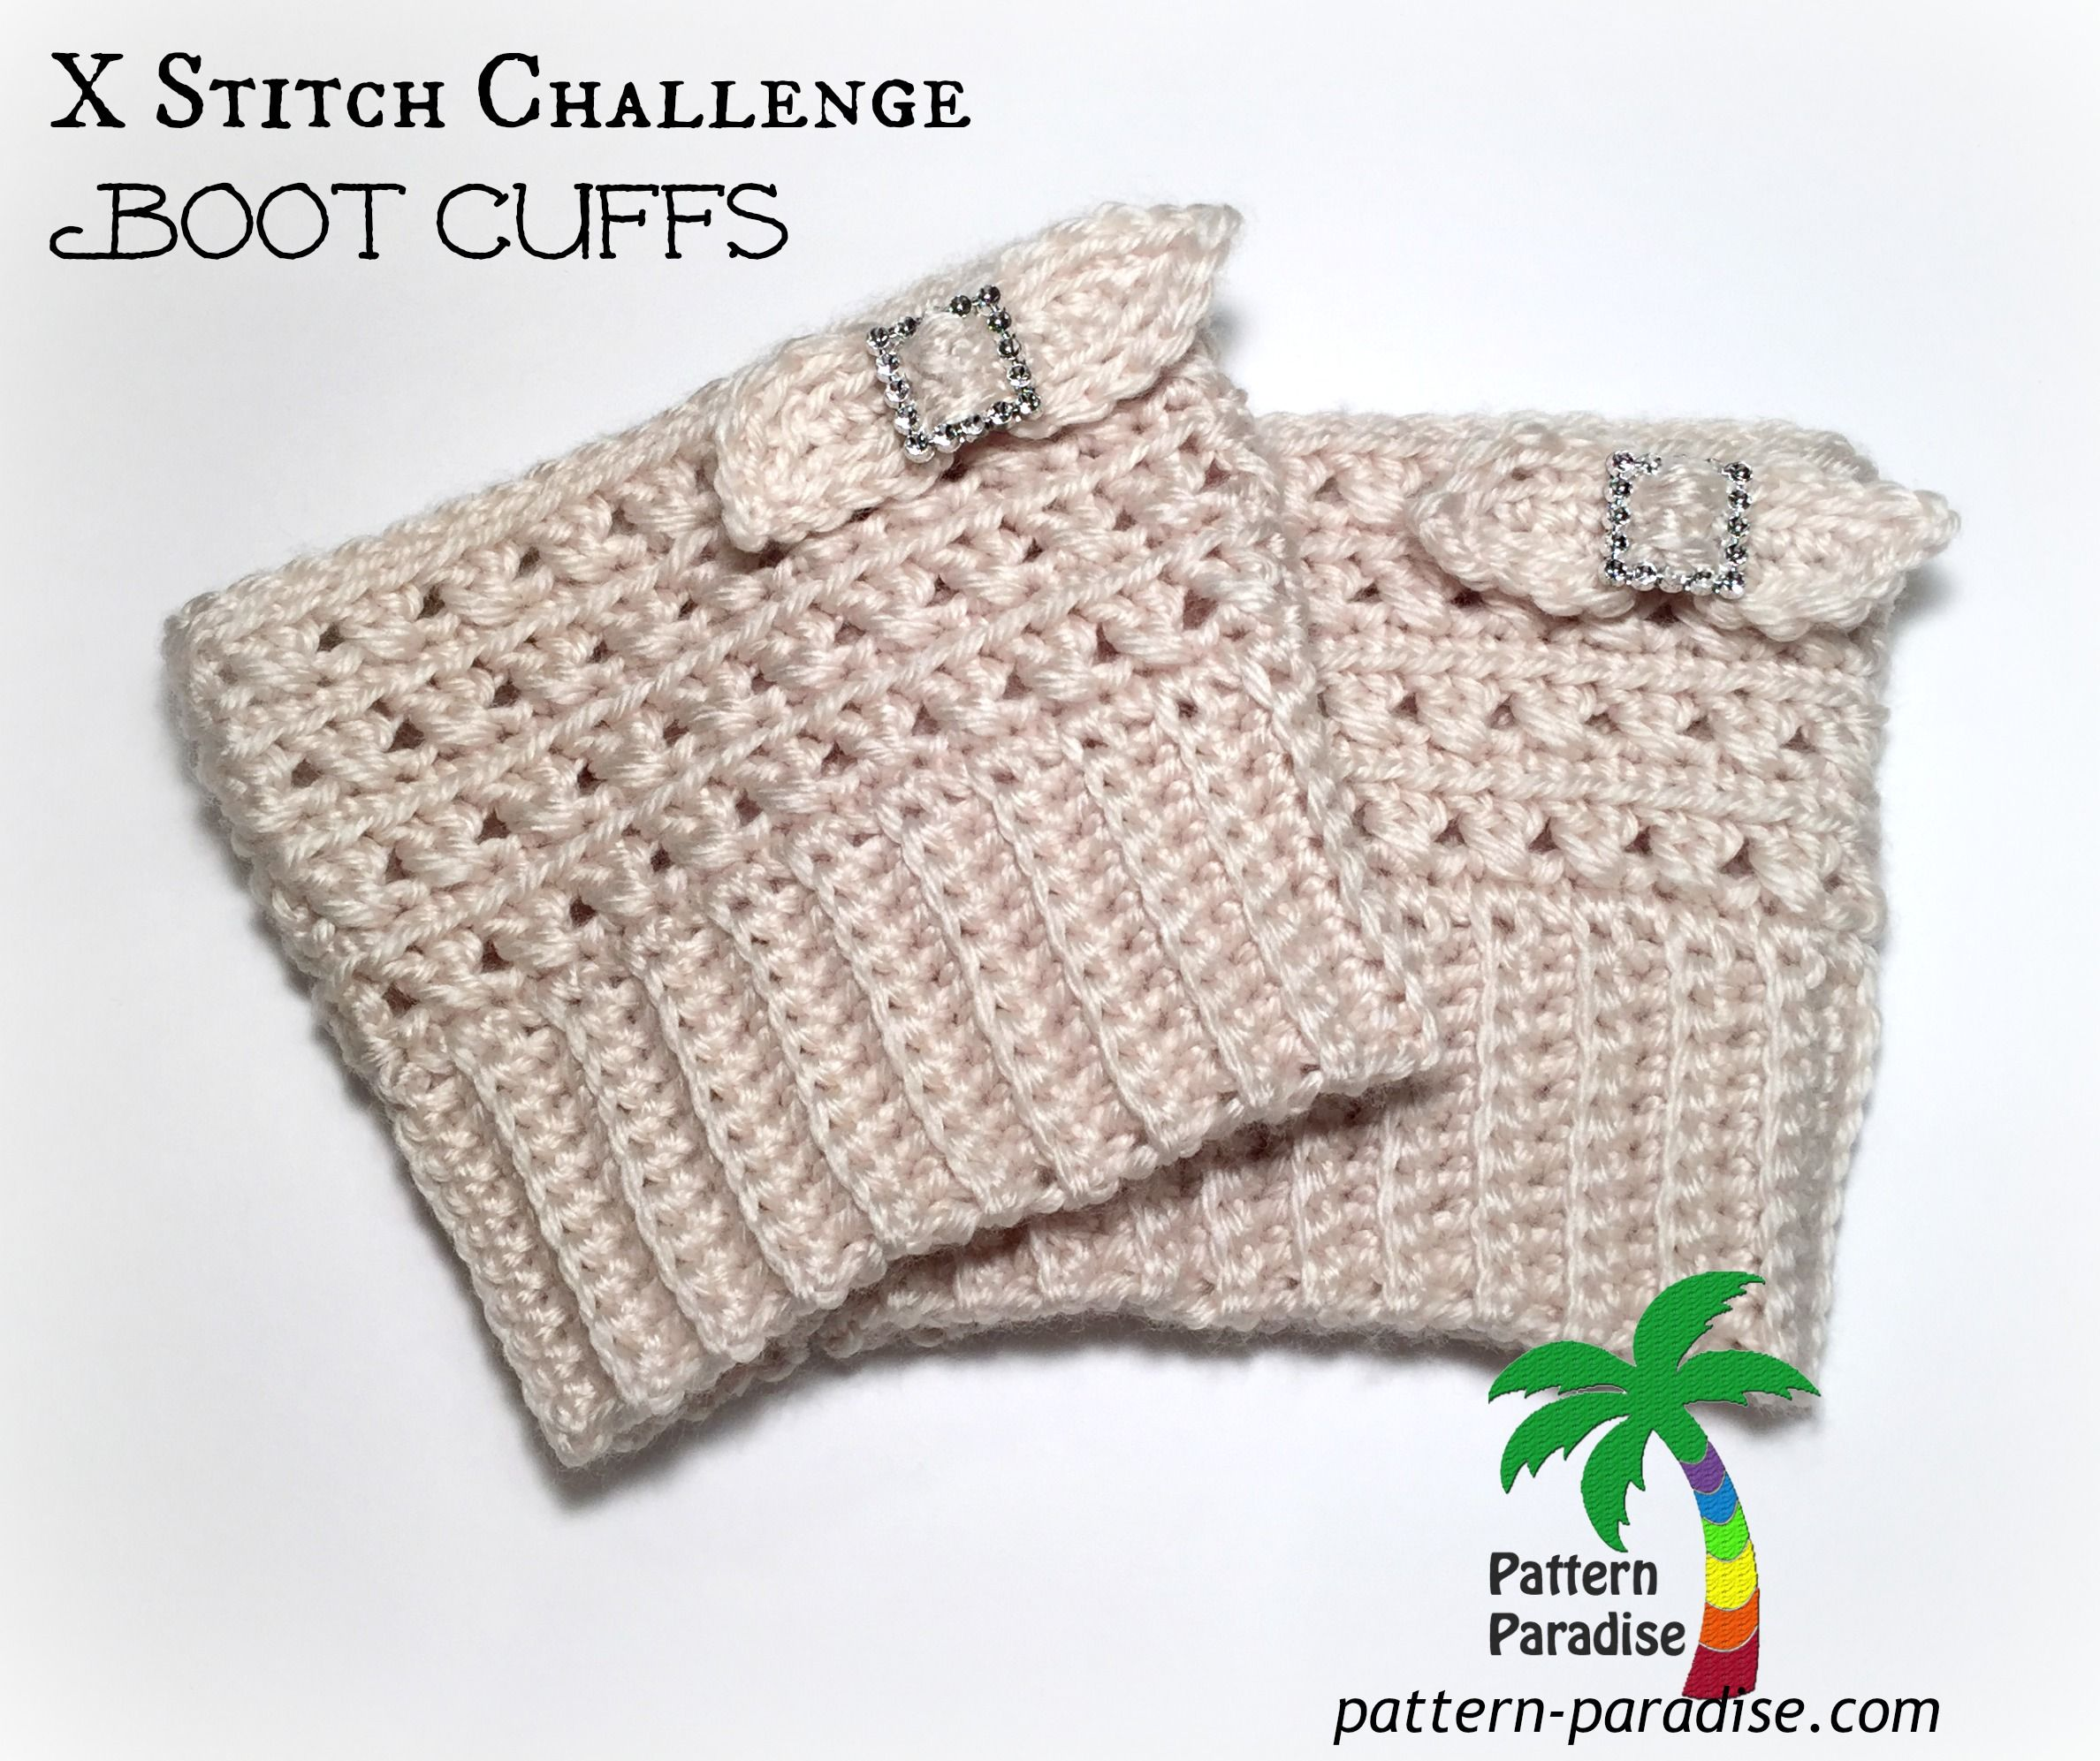 XSt Boot Cuffs title by pattern-paradise.com is a free pattern but ...